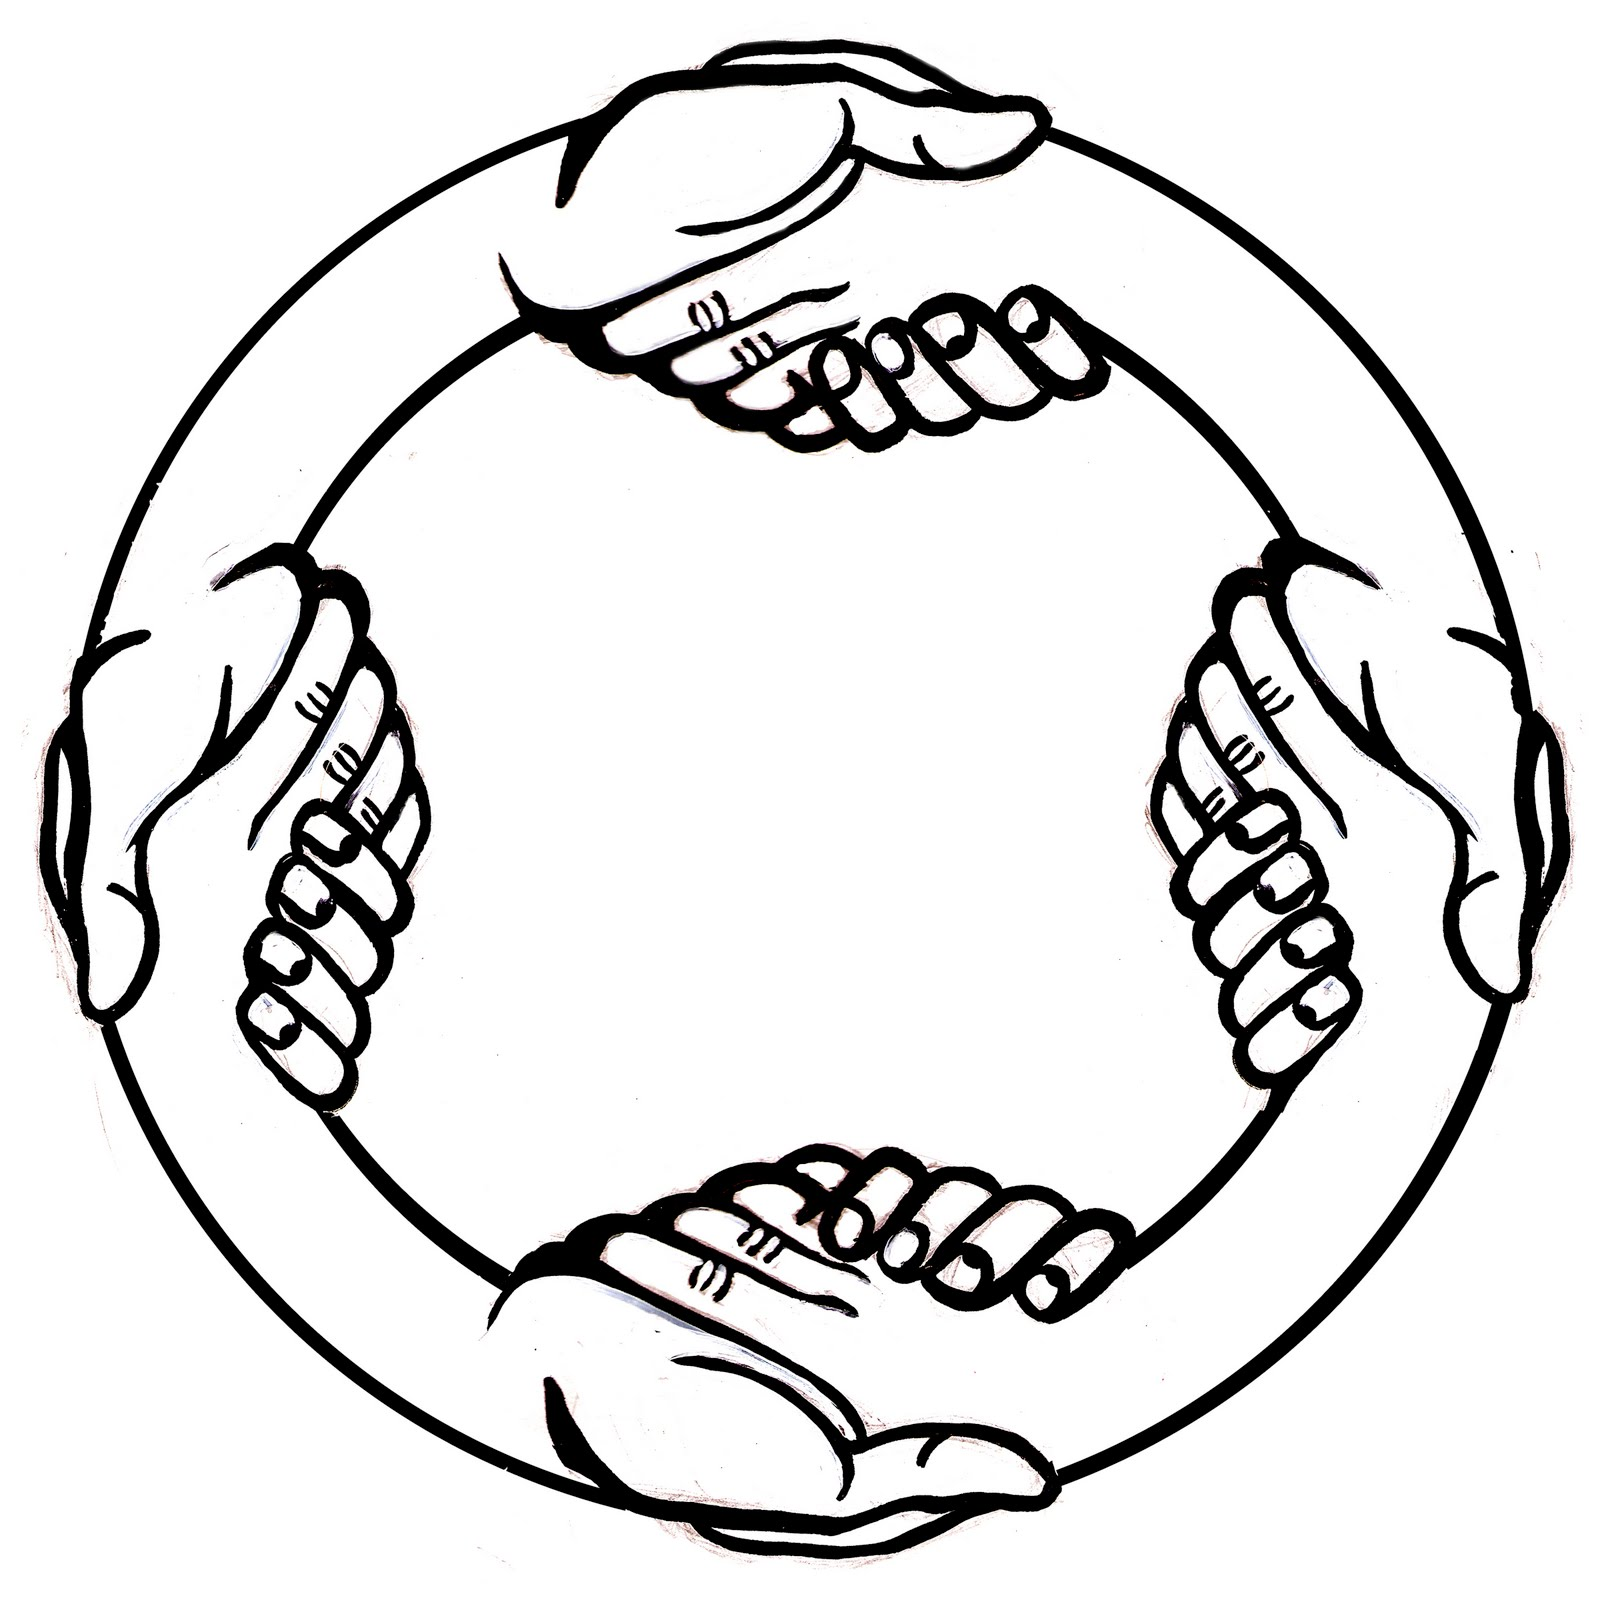 Picture Of Two Hands Shaking